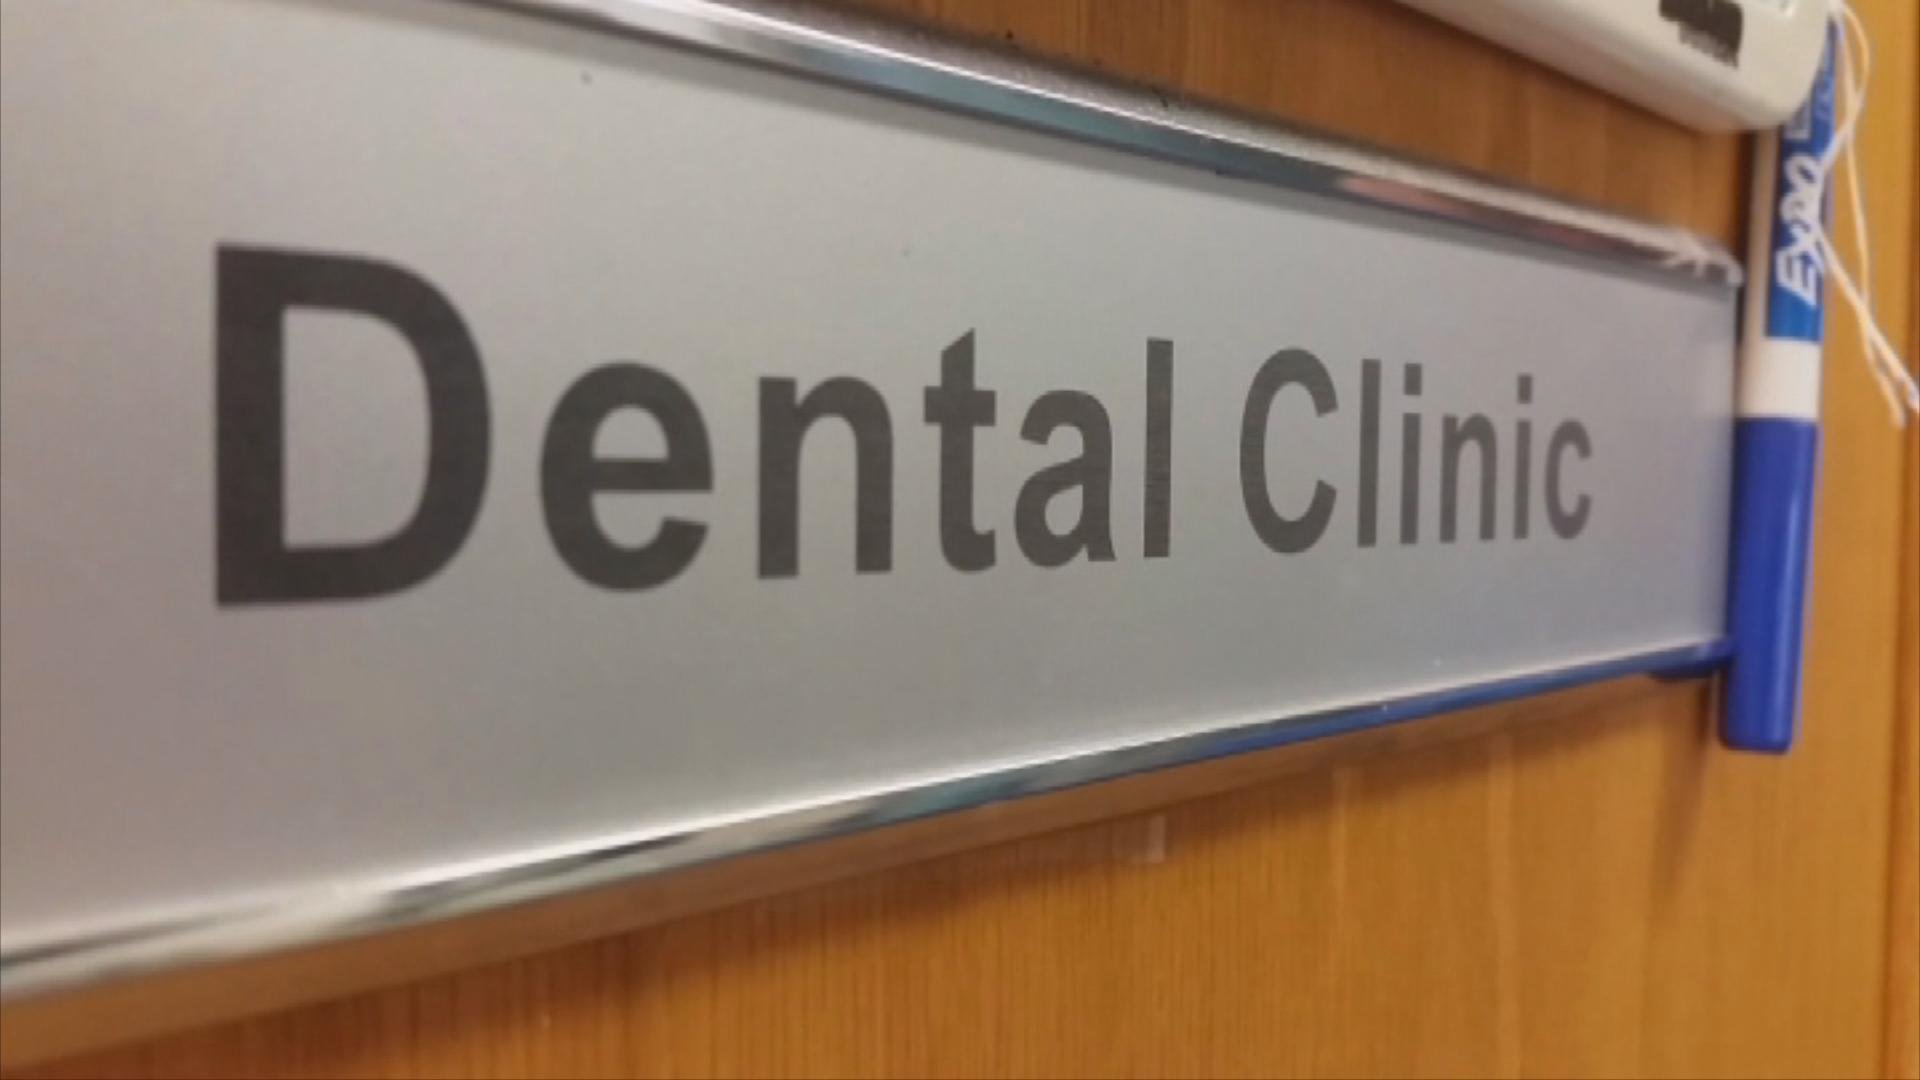 Boys & Girls Club teams with More Smile Wisconsin for new dental clinic in Fitchburg